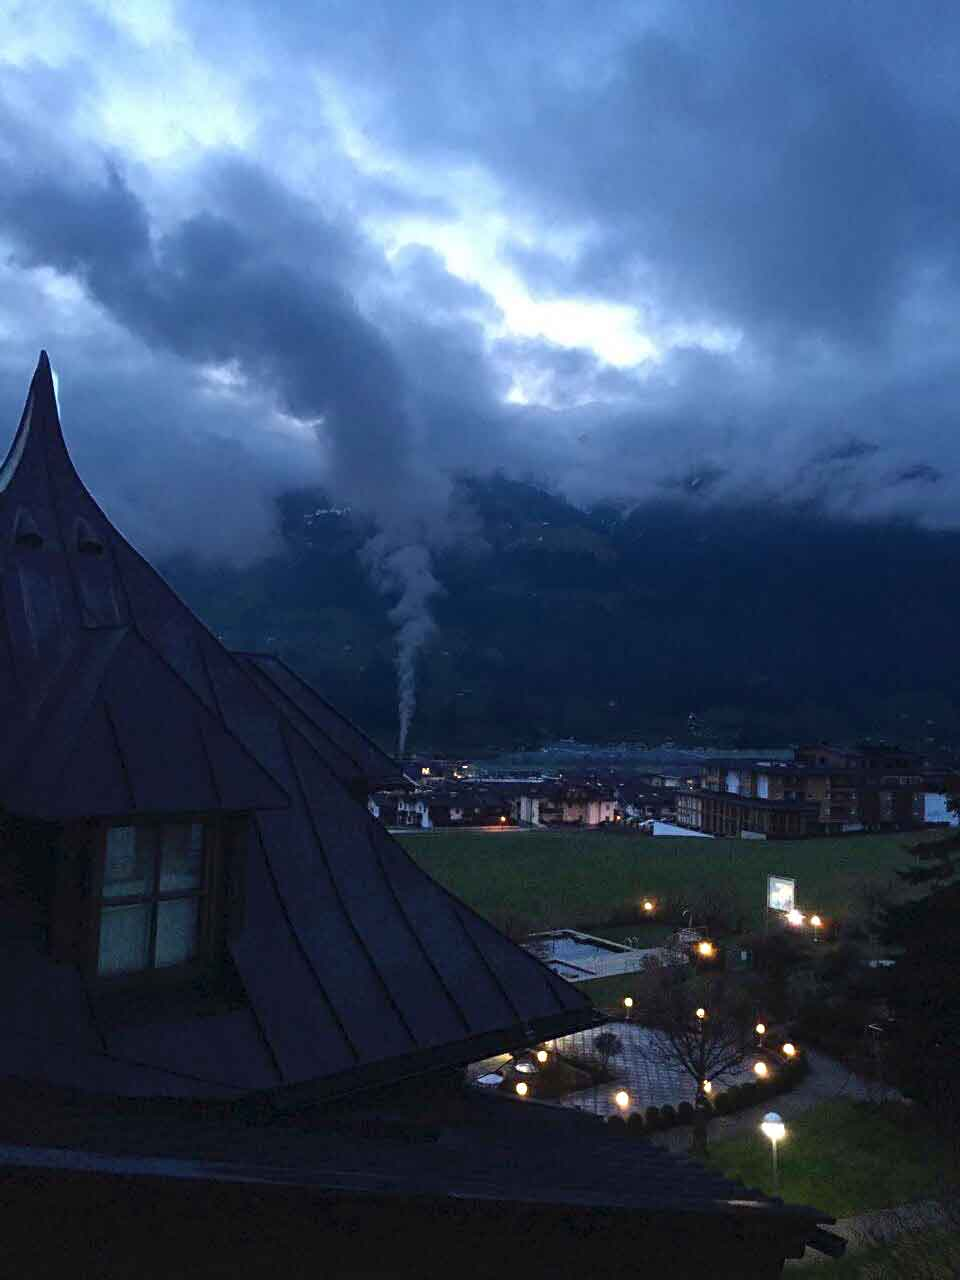 View from the room in the morning at 6:30a.m., Gartenhotel Crystal. Image©gunjanvirk